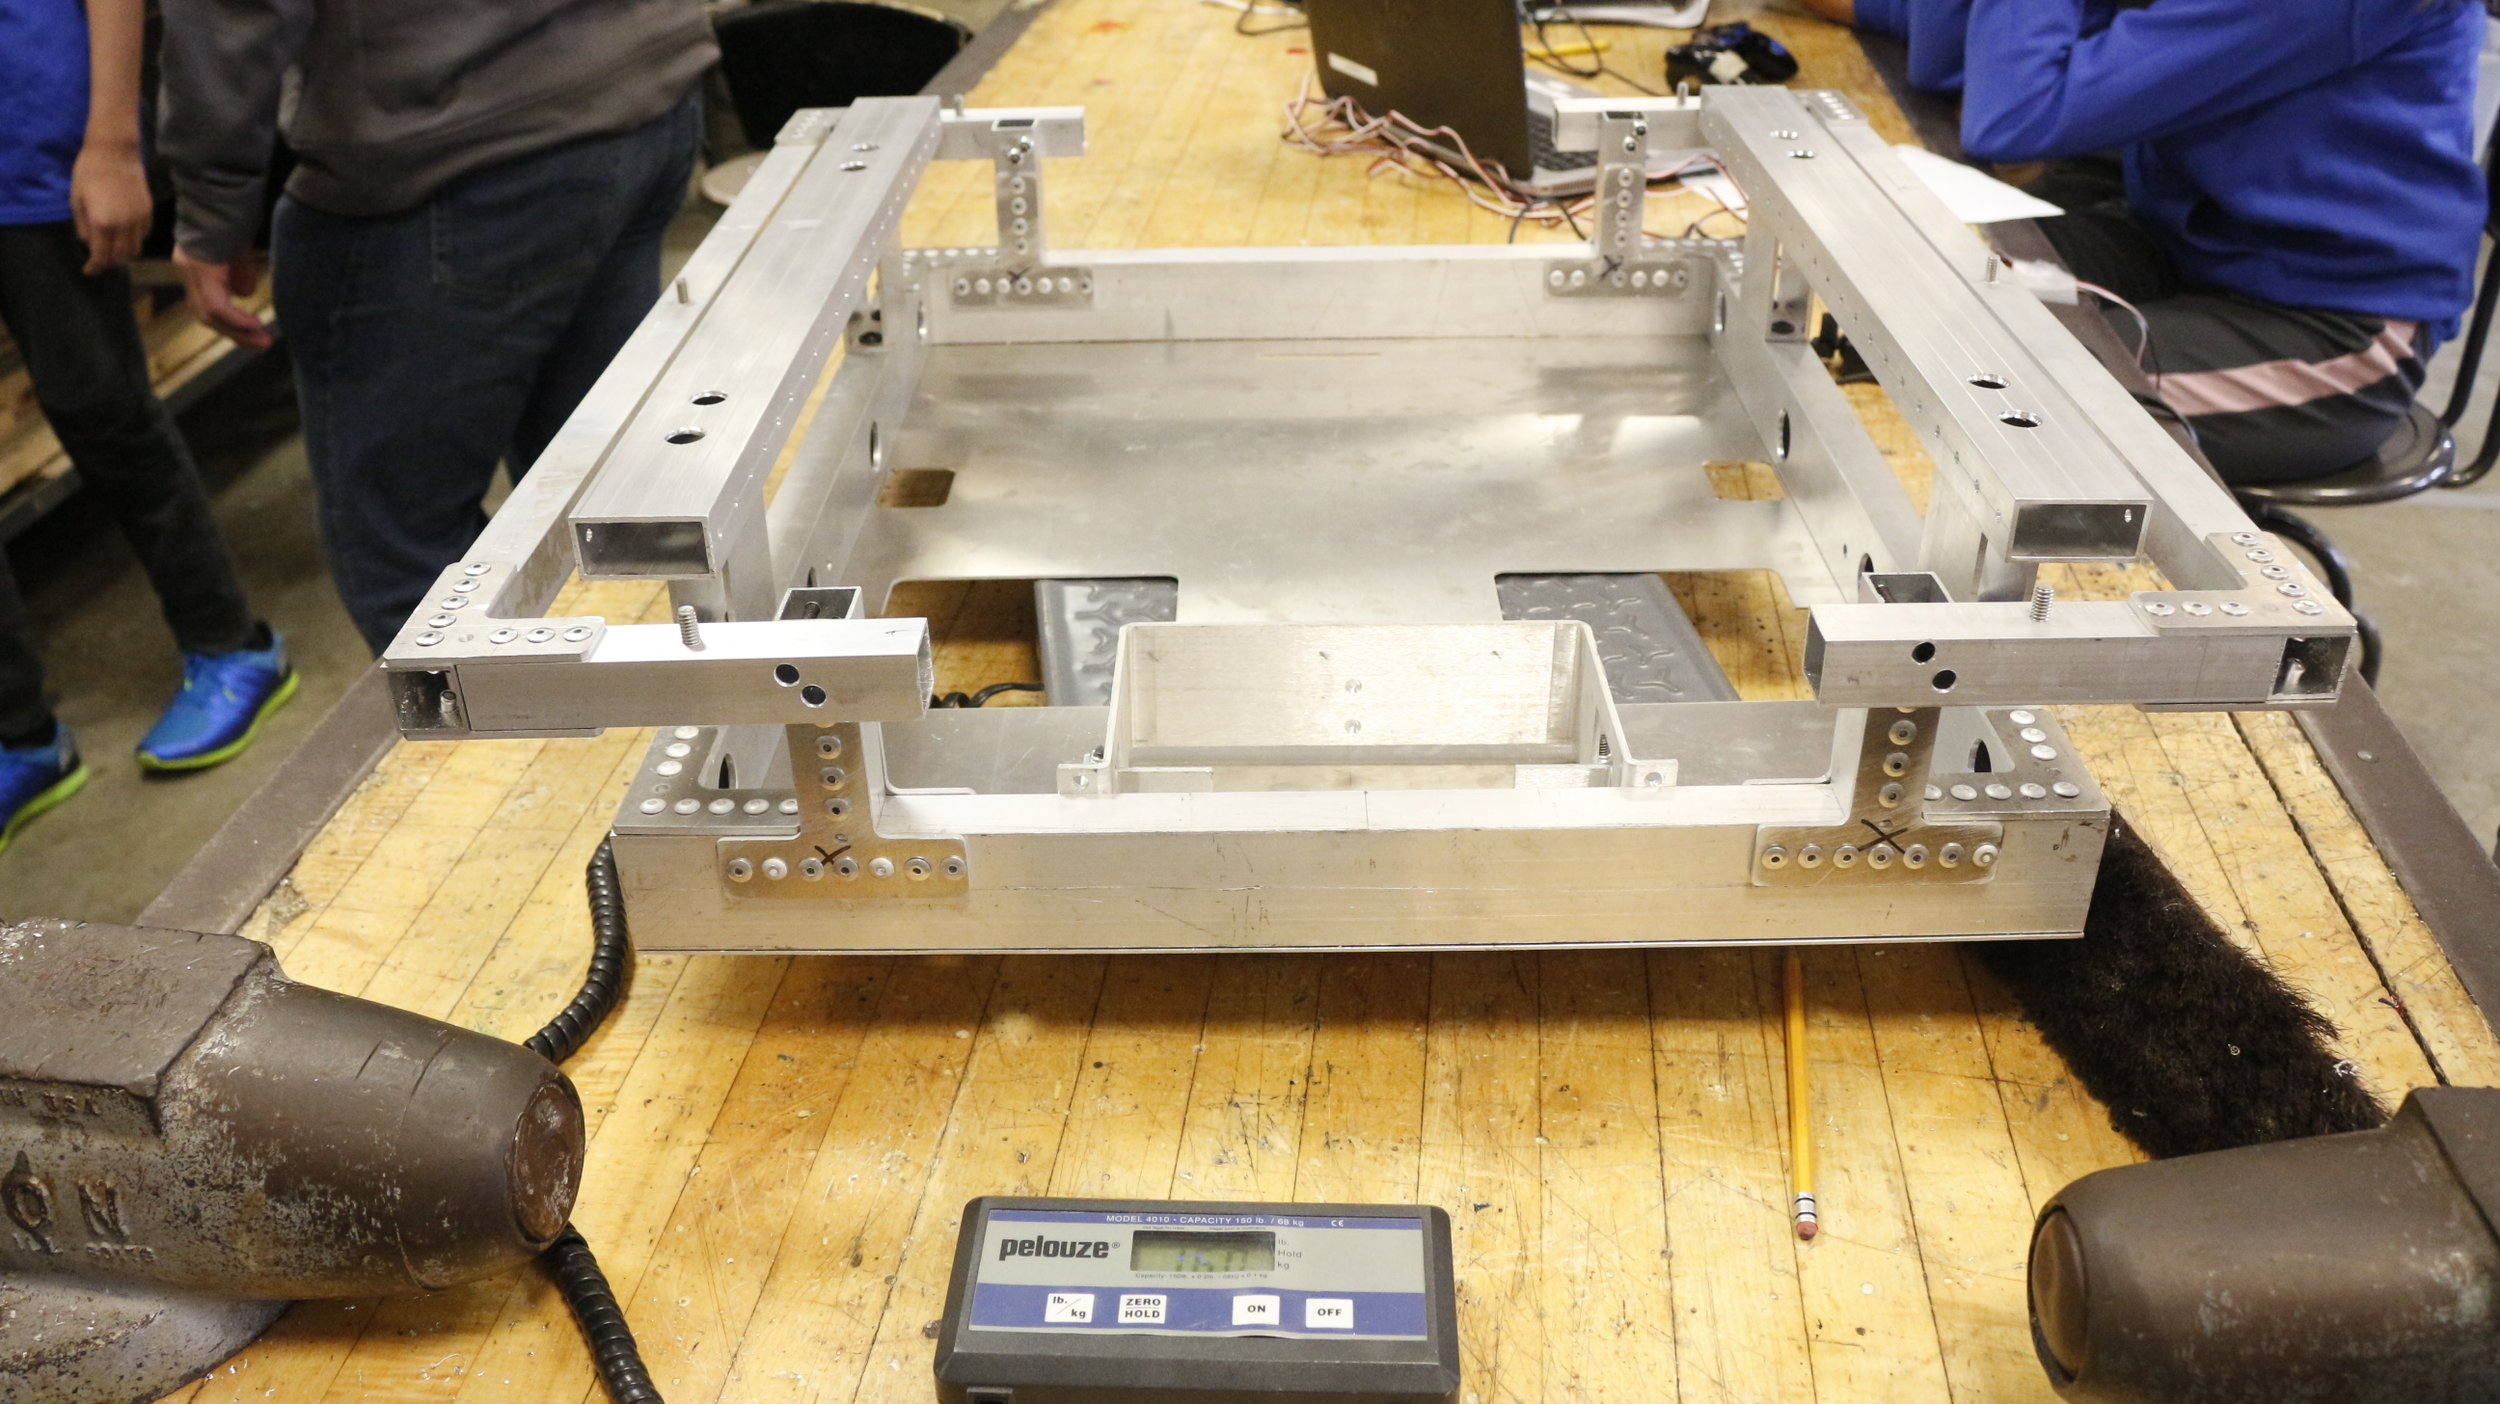 - Weight of the frame - 16.0 pounds. Smallest and lightest robot frame we have ever made.